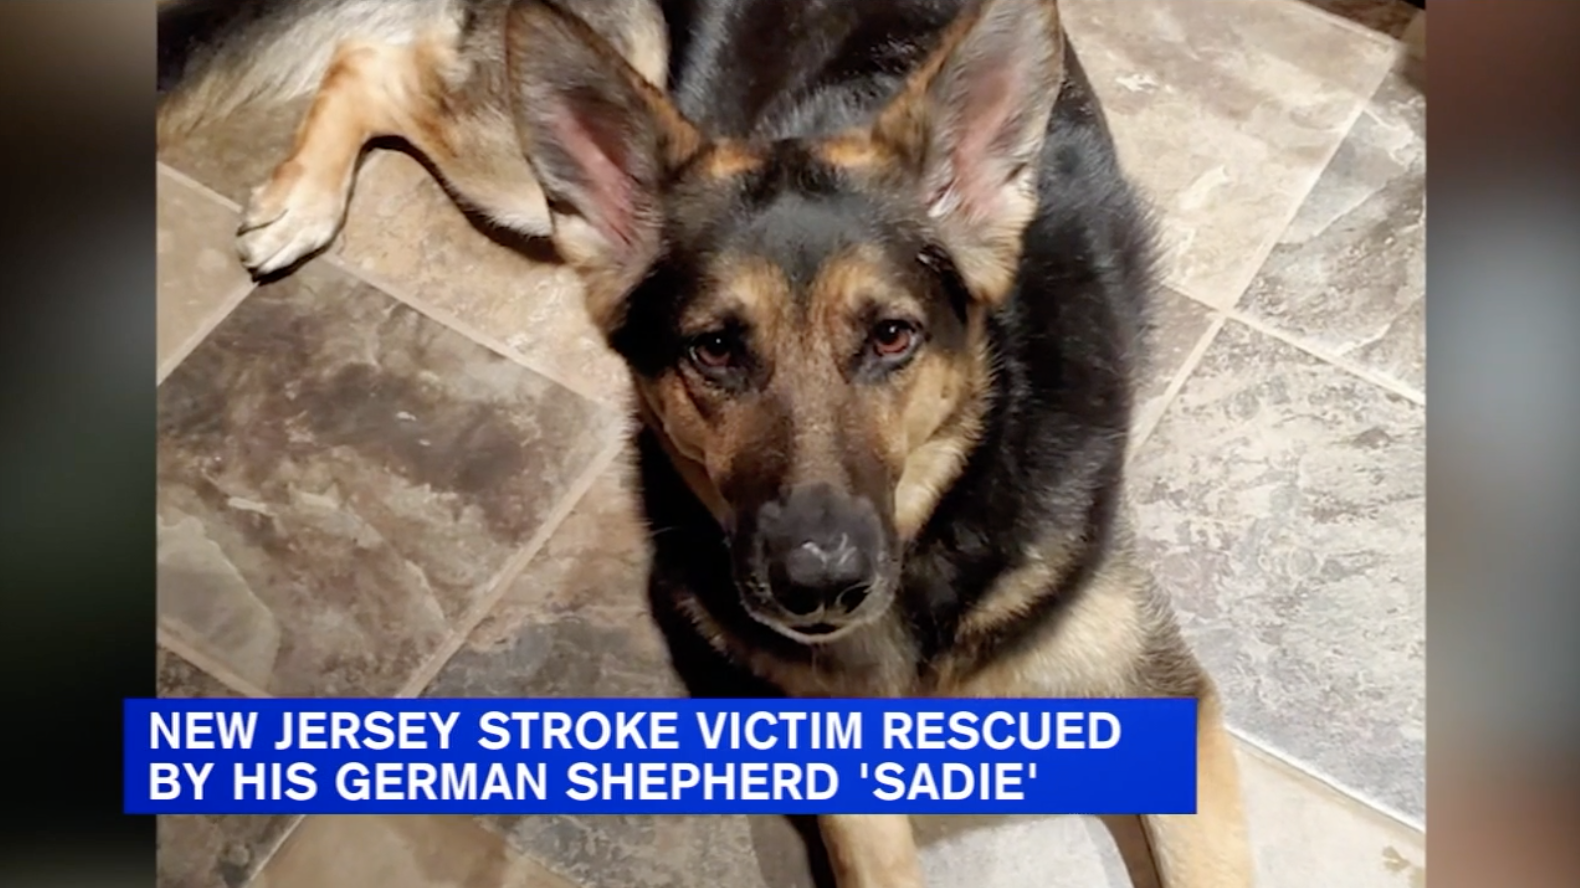 New Jersey man explains how newly rescued German shepherd helped save his life during stroke (ABC 7 New York)